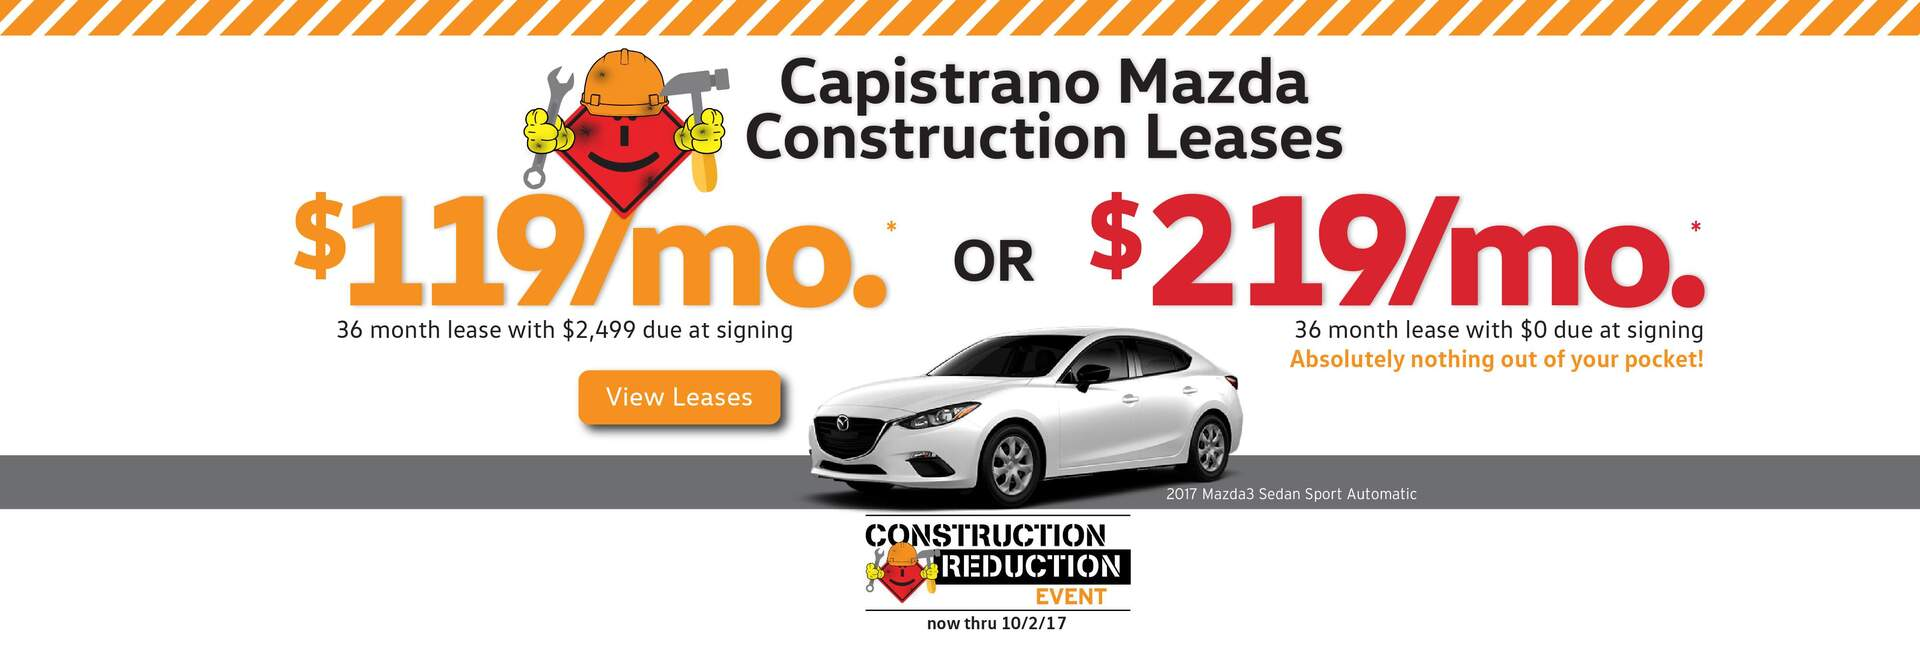 Capistrano Mazda Construction Reduction Event